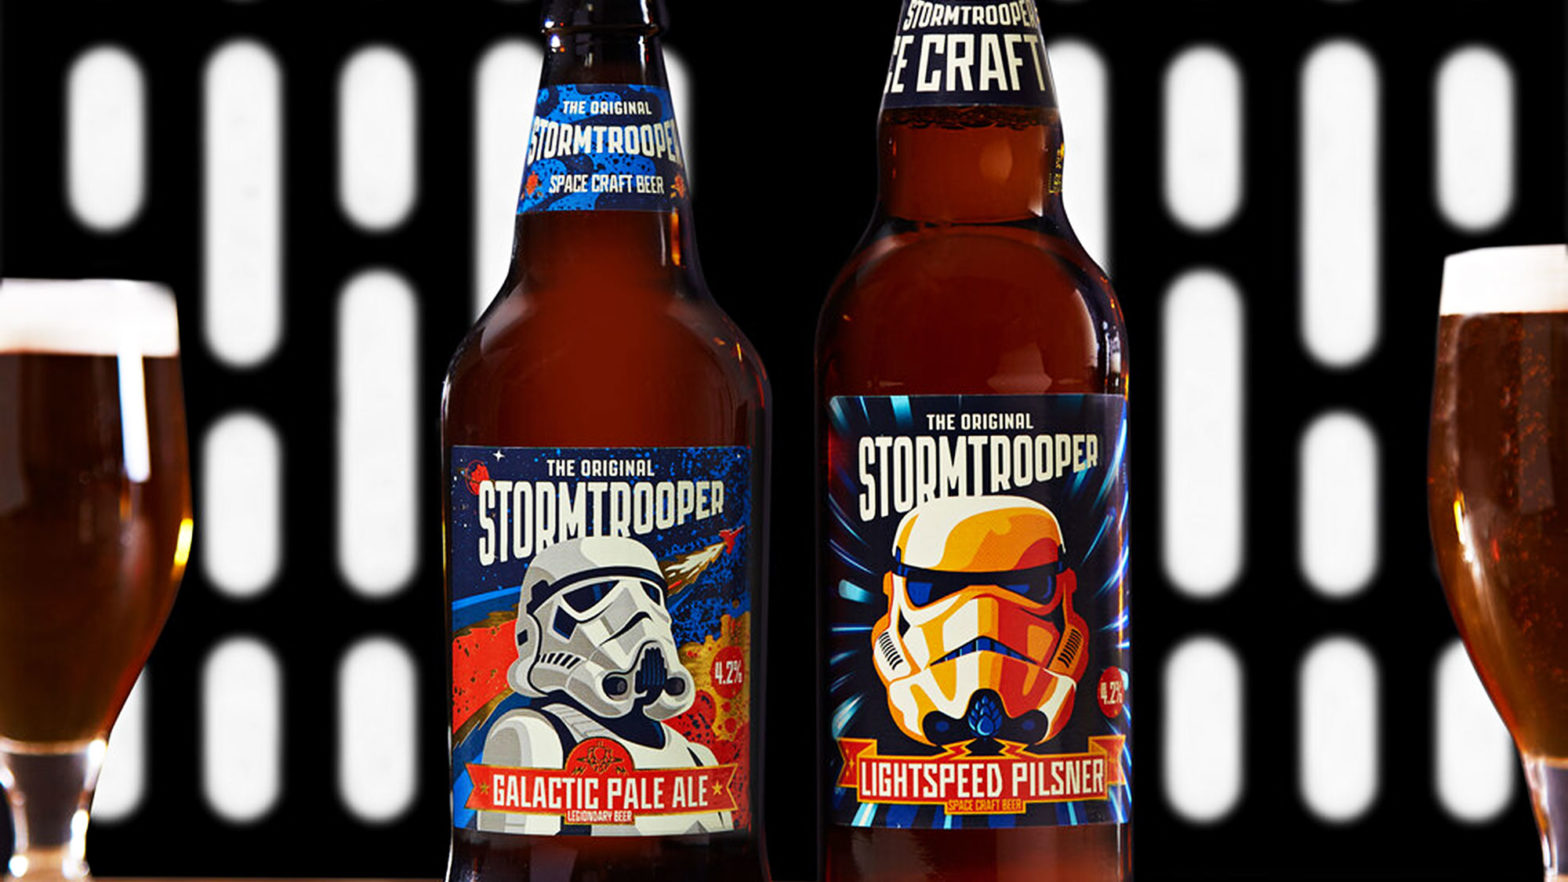 Galactic Pale Ale and Lightspeed Pilsner